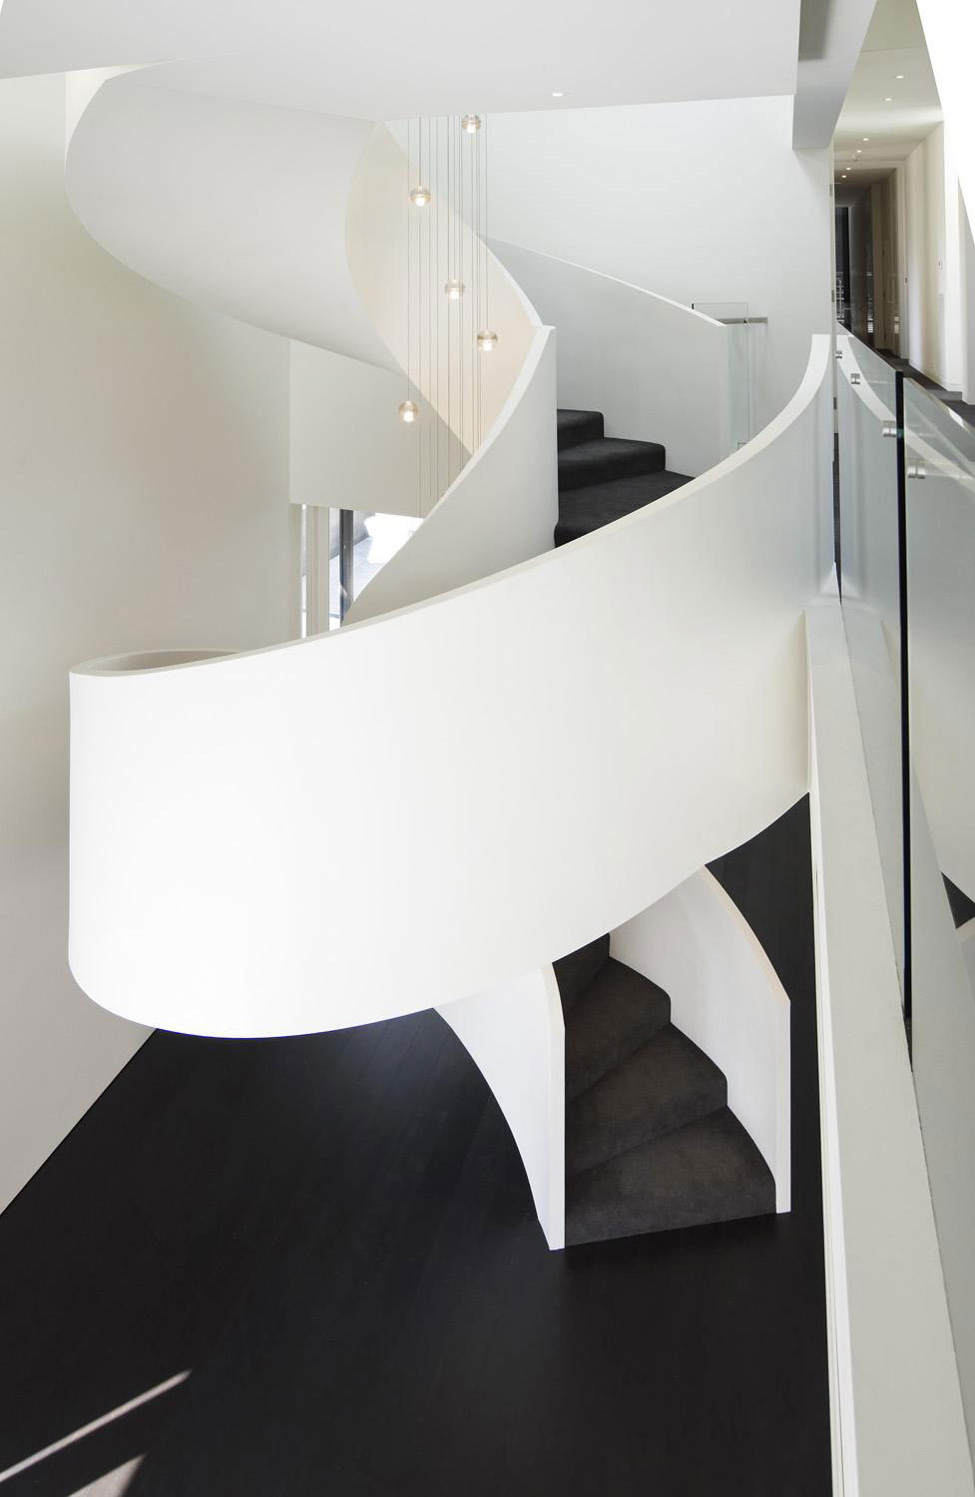 Swirling Stairs, Verdant Avenue Home in Melbourne, Australia by Robert Mills Architects